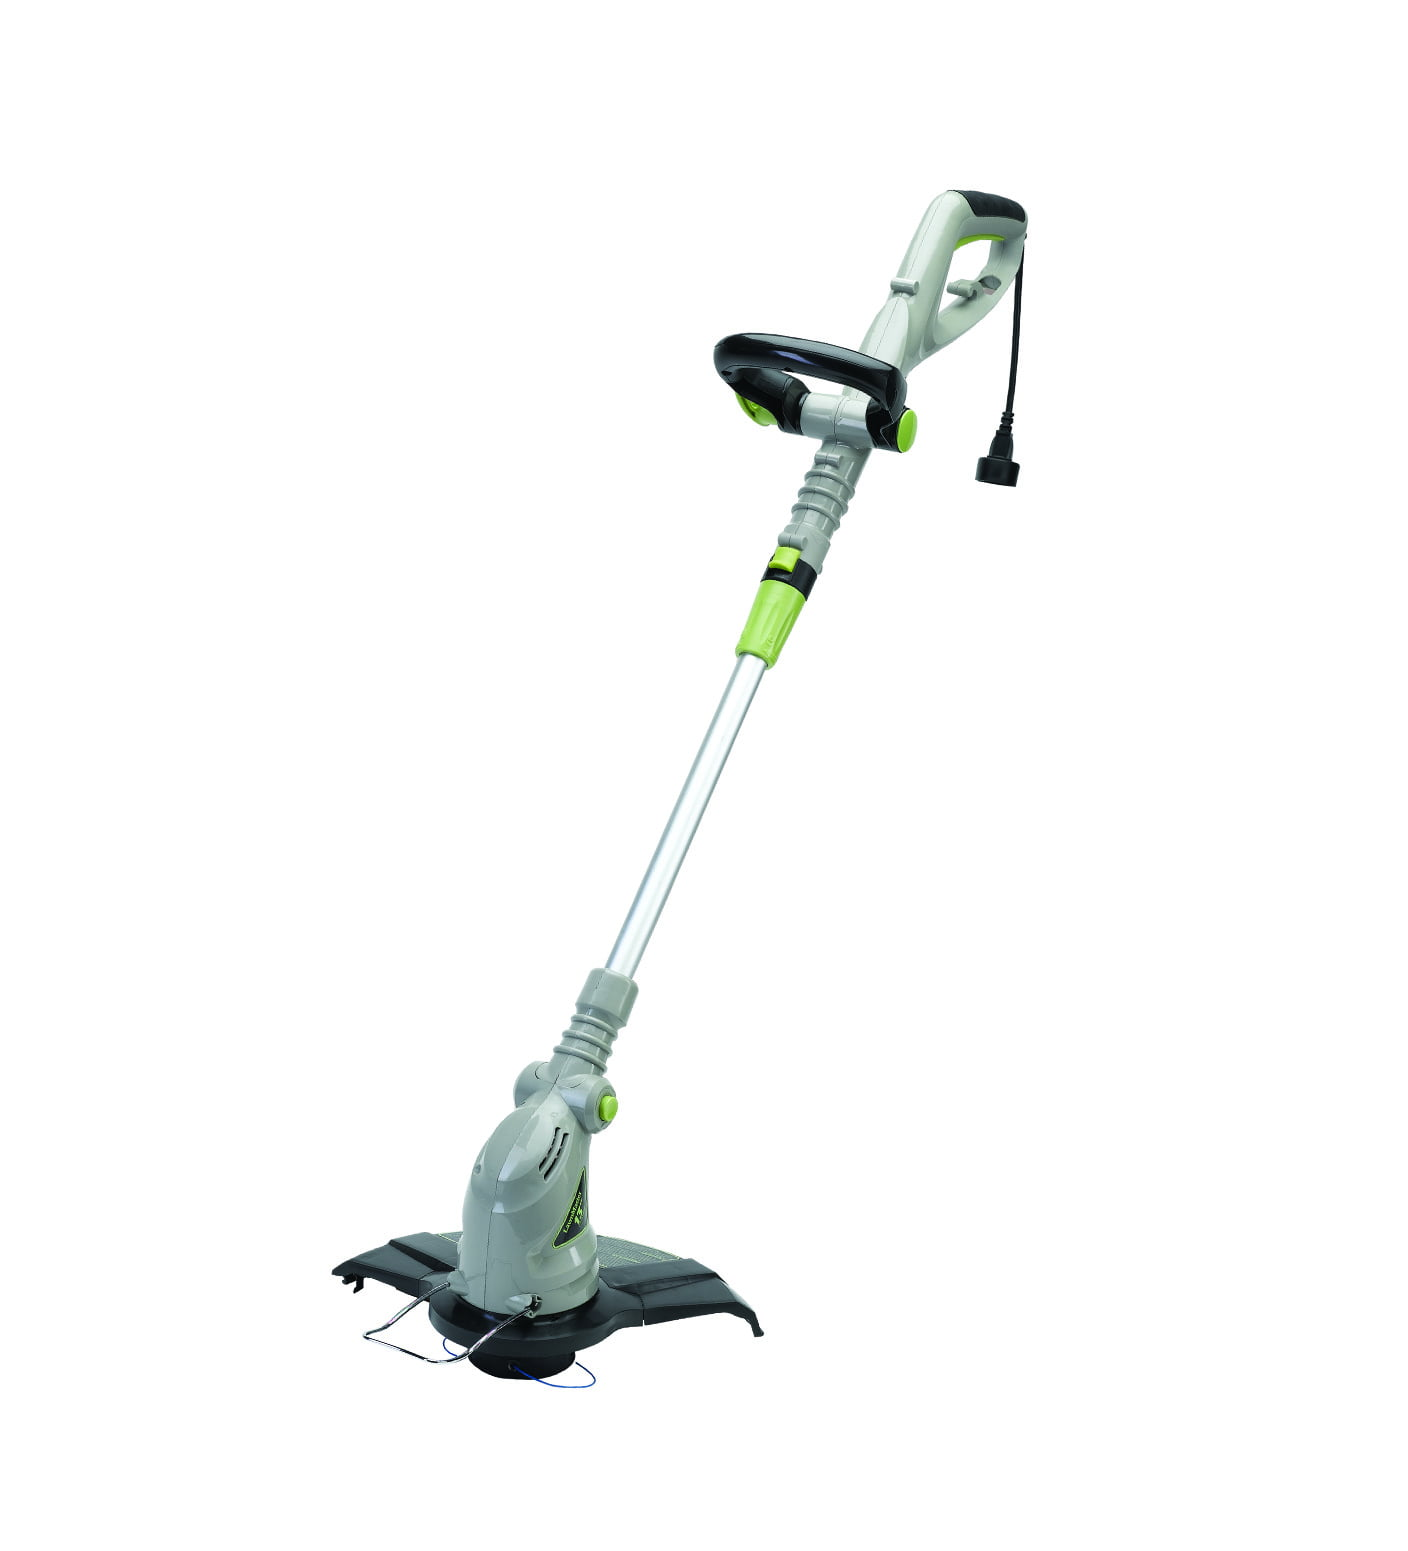 "LawnMaster 4.2-Amp Electric 13"" Grass Trimmer, GT1313 by Cleva North America, Inc."